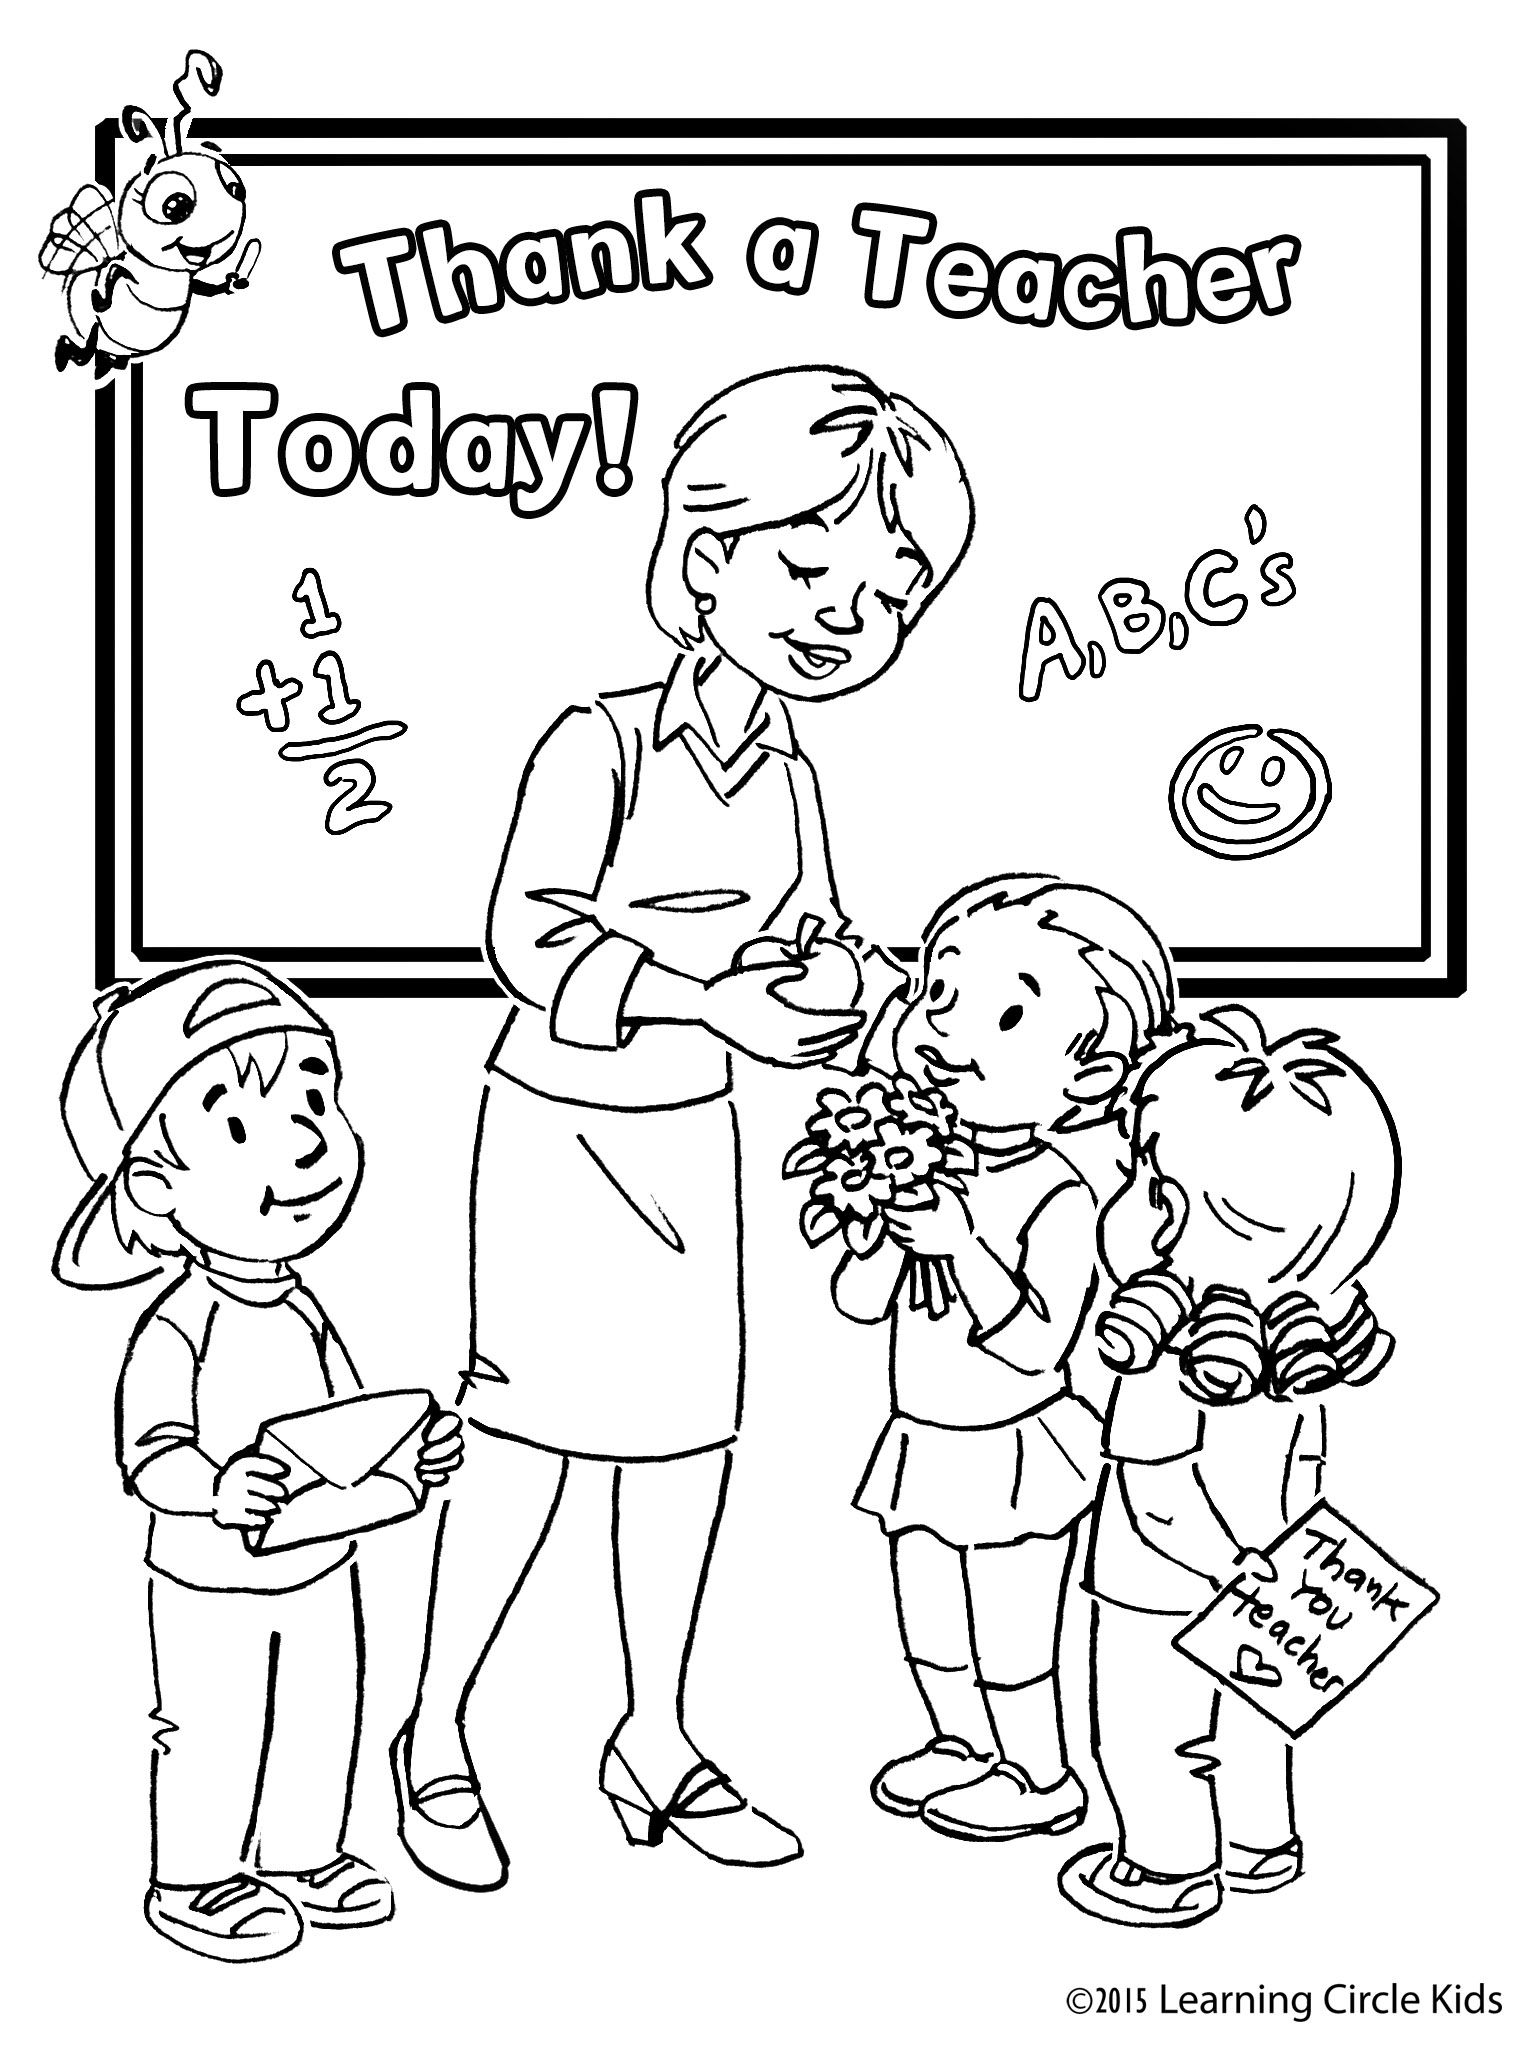 Coloring Pages For Your Teacher : Free kids coloring page for teacher appreciation day http